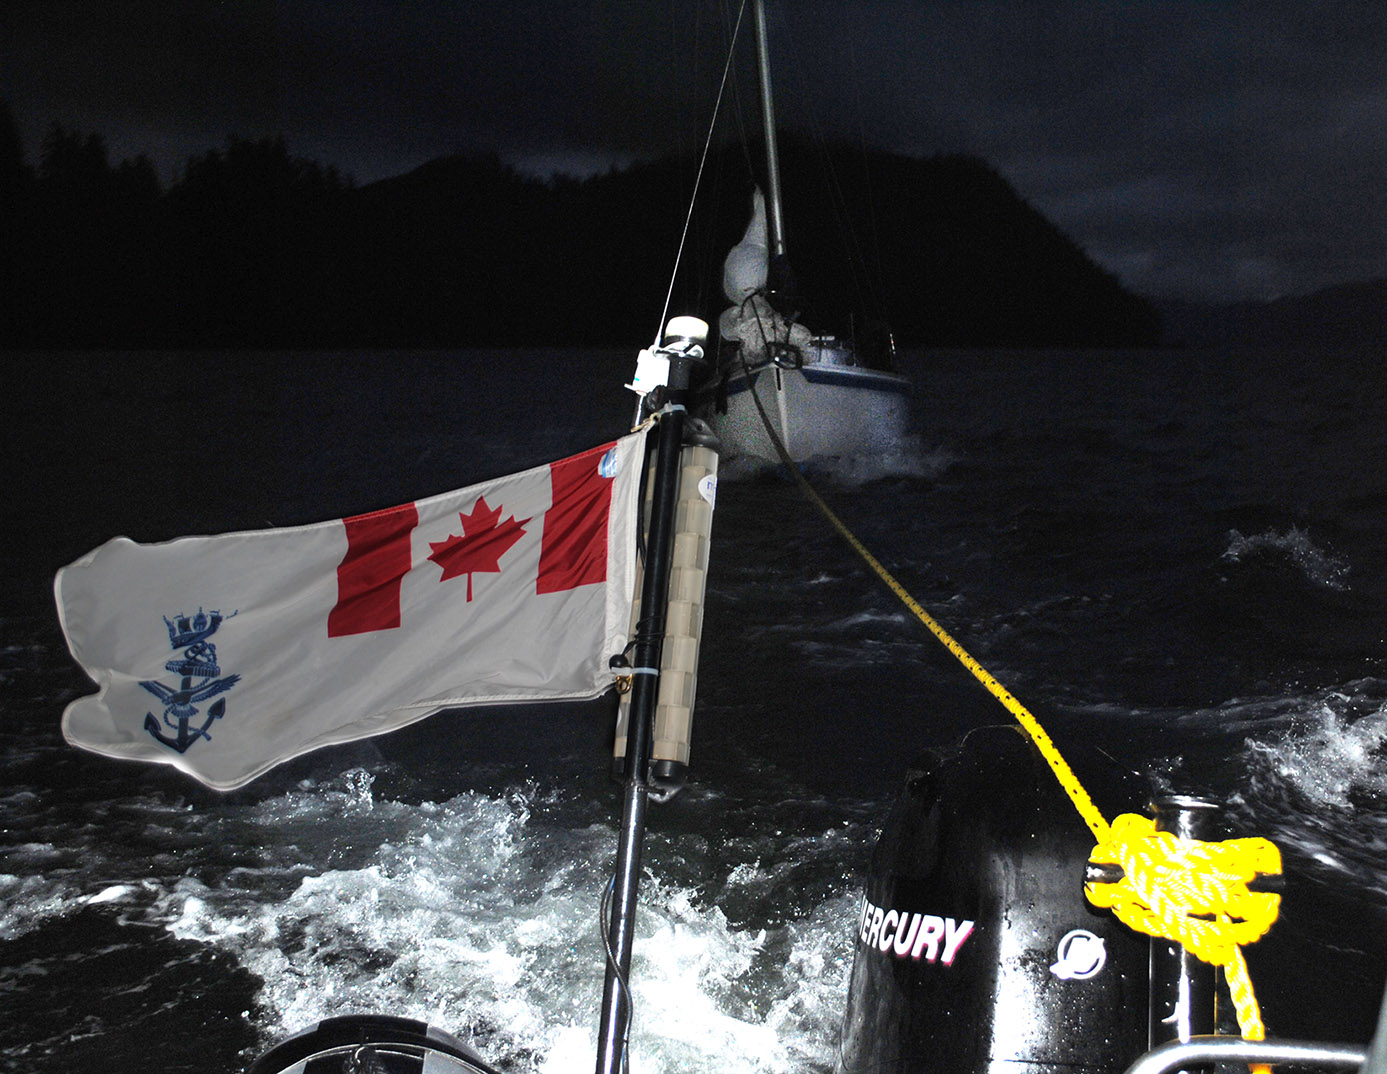 HMCS Whitehorse's rigid-hulled inflatable boat tows a sailboat through rough seas into Winter Harbour, B.C., after receiving a distress signal on August 16. (The lighting of this photo has been adjusted to make the sailboat more visible.)